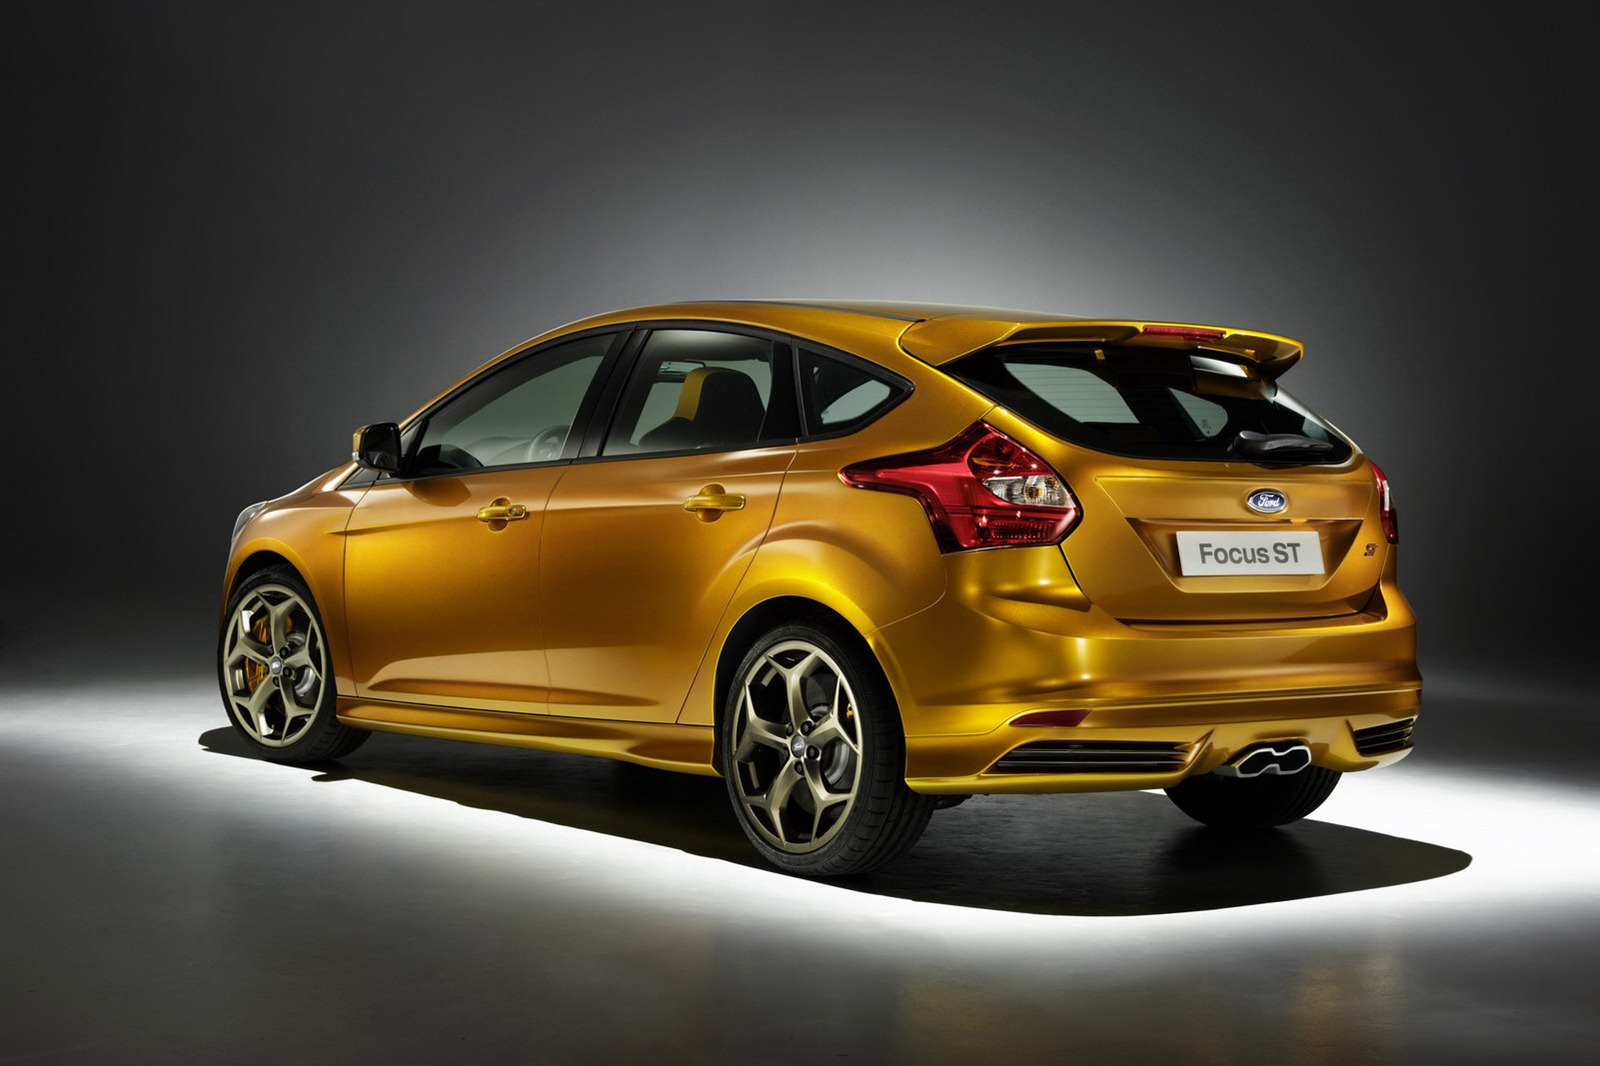 ford to upgrade 2013 focus st with ecoboost power train. Black Bedroom Furniture Sets. Home Design Ideas